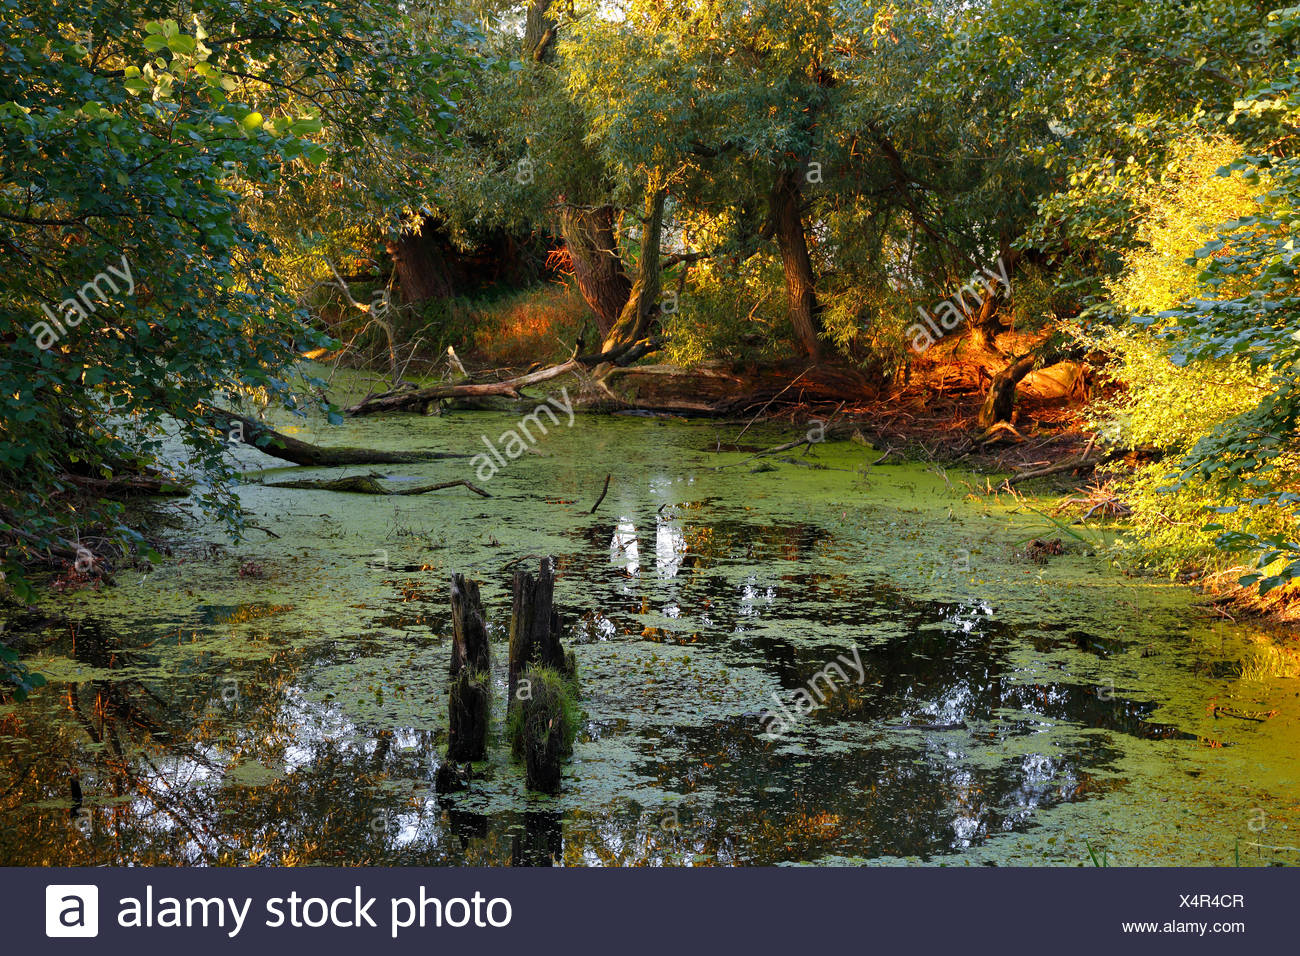 Oxbow lake in the floodplain landscape, Middle Elbe Biosphere Reserve, Dessau-Rosslau, Saxony-Anhalt, Germany - Stock Image